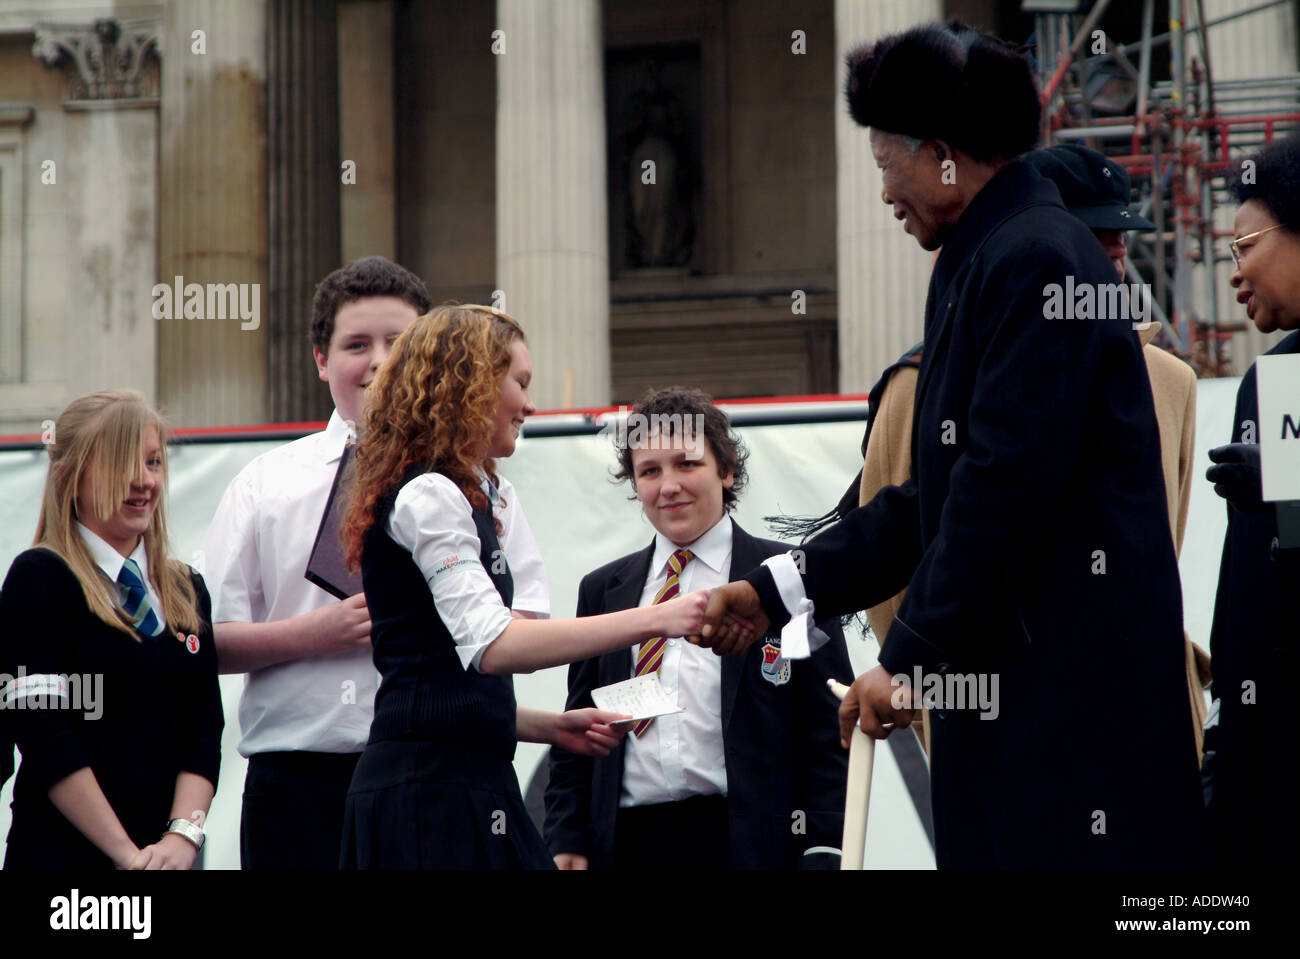 PRESIDENT NELSON MANDELA HAND SHAKING WITH THE GROUP OF STUDENT DURING THE RALLY OF MAKE POVERTY HISTORY IN TRAFALGAR SQ LONDON - Stock Image